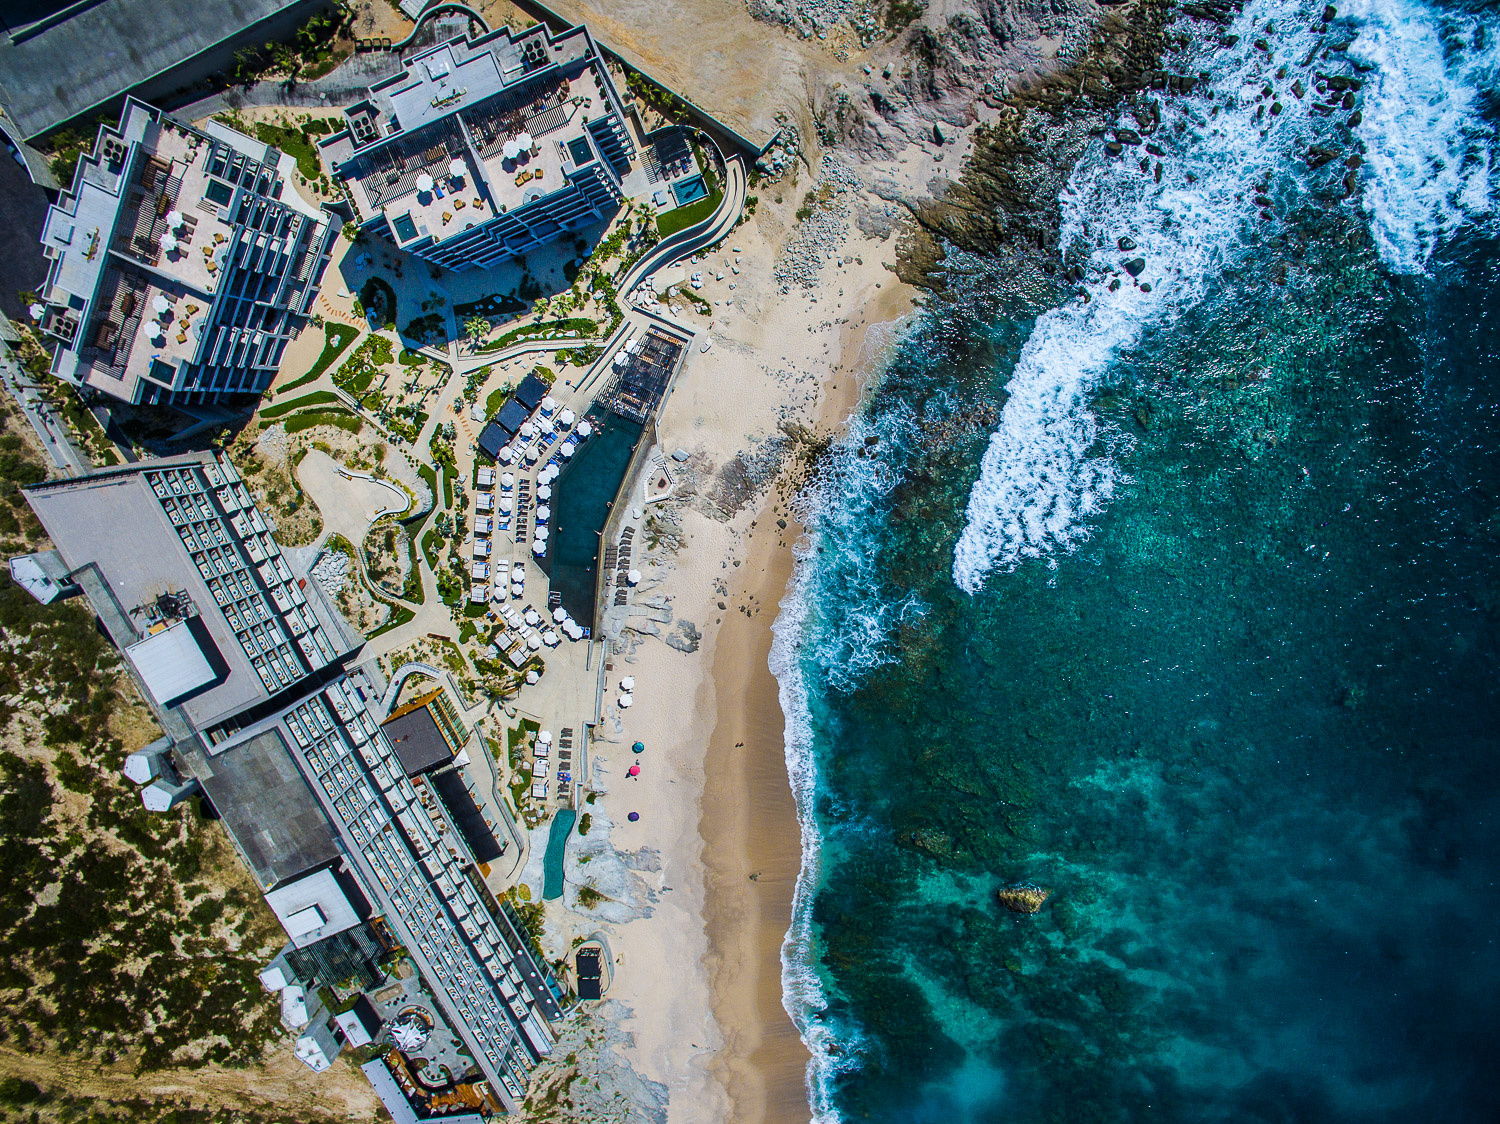 Aerial view of The Cape resort in Cabo San Lucas, Mexico. Four bildings, two pools, beach and the Sea of Cortez